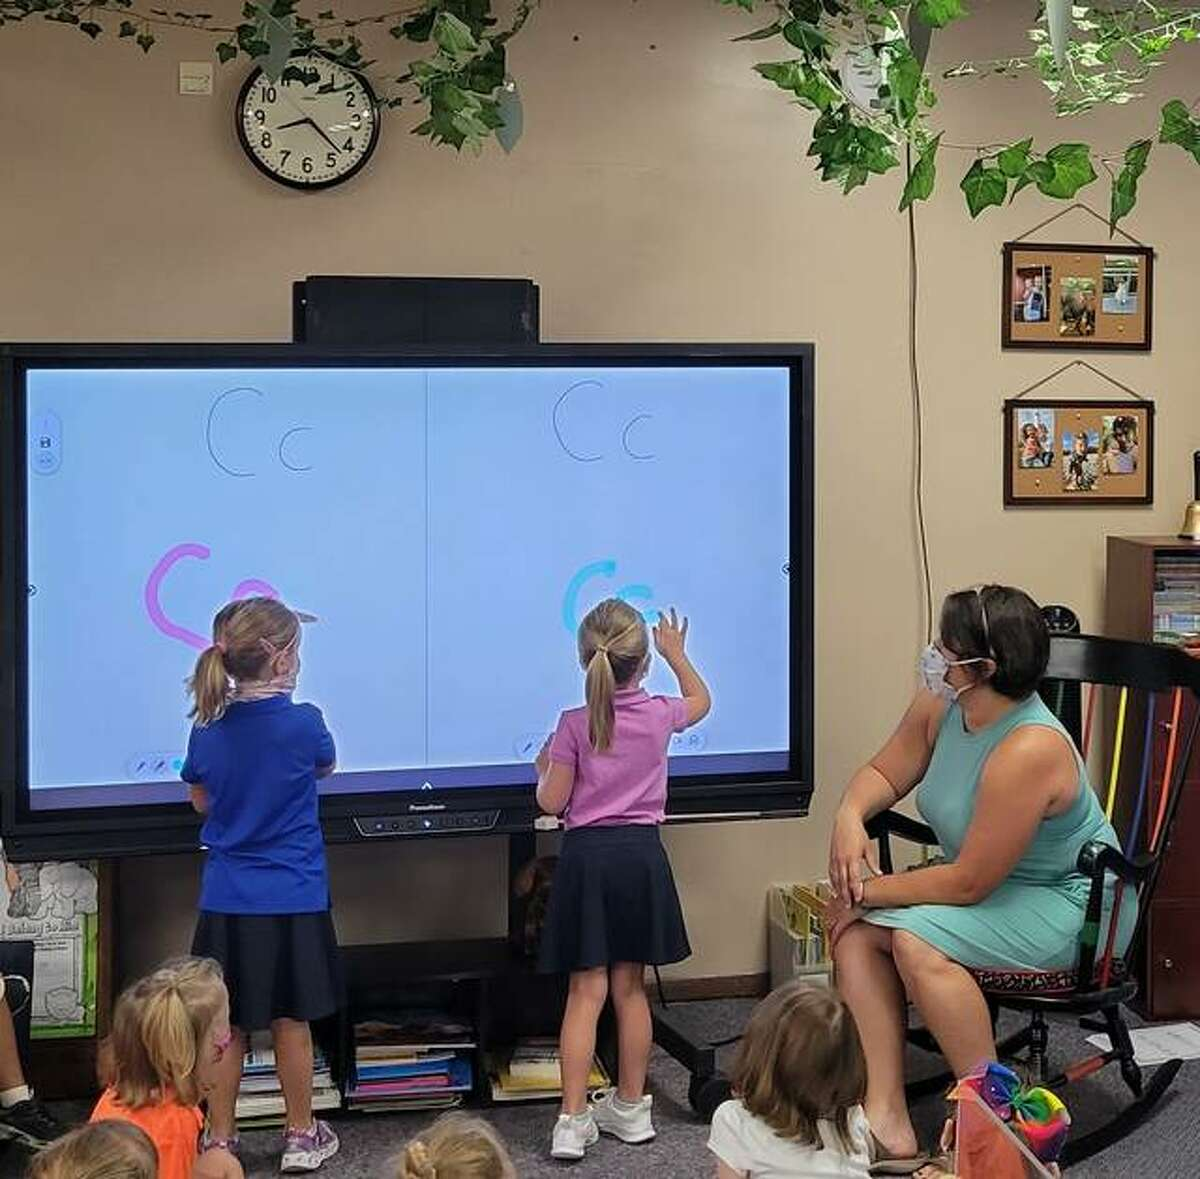 Kindergarten students at Zion Bethalto experiment with the ActivPanel's Vellum writing technology. The feature enables users to write on the interactive display with special pens or fingers, and palms of hands can be used to erase.